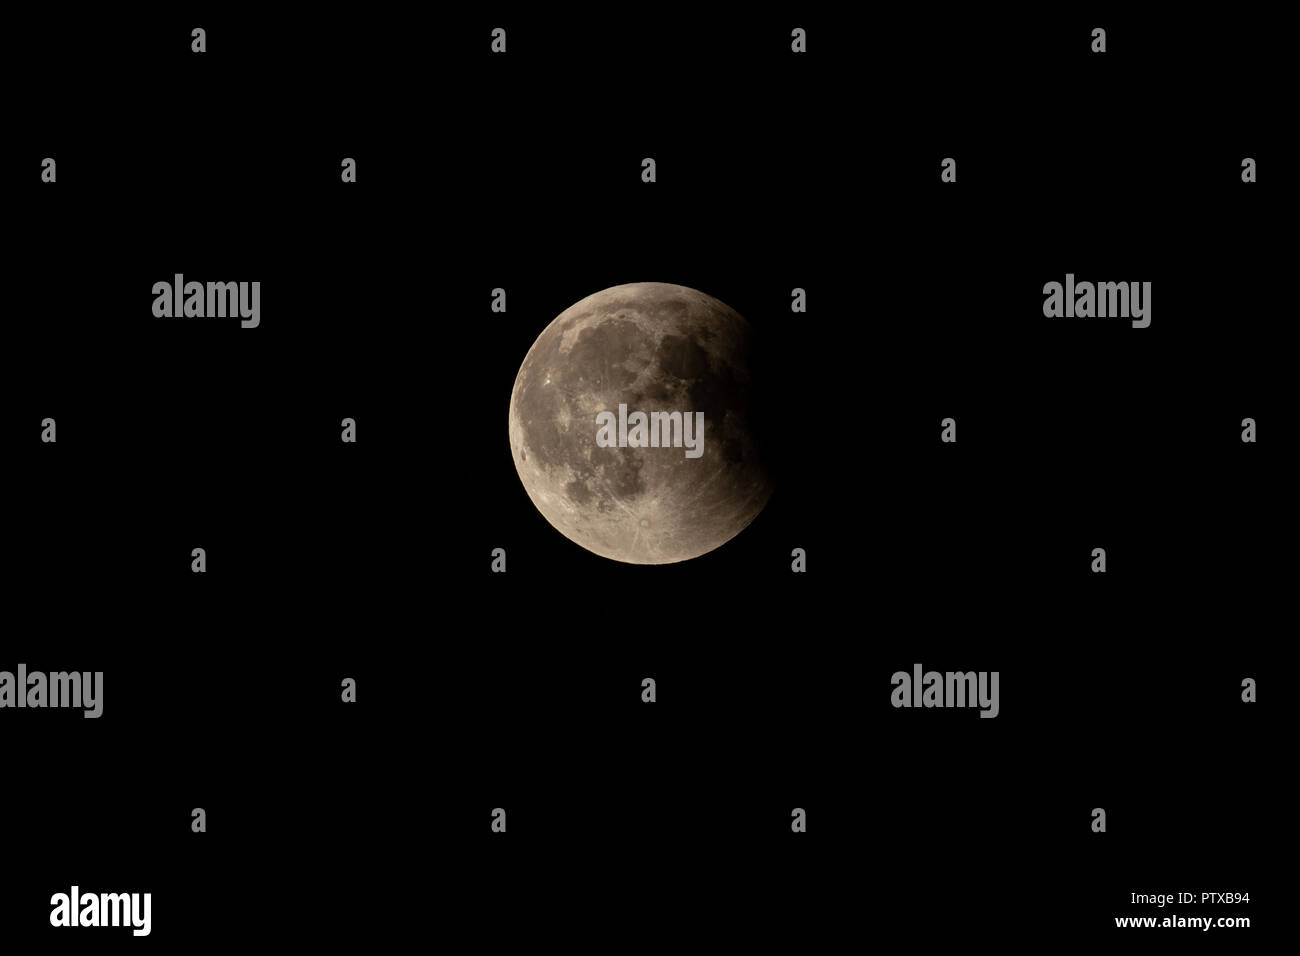 Partially eclipsed full moon, long shot, black sky - Stock Image